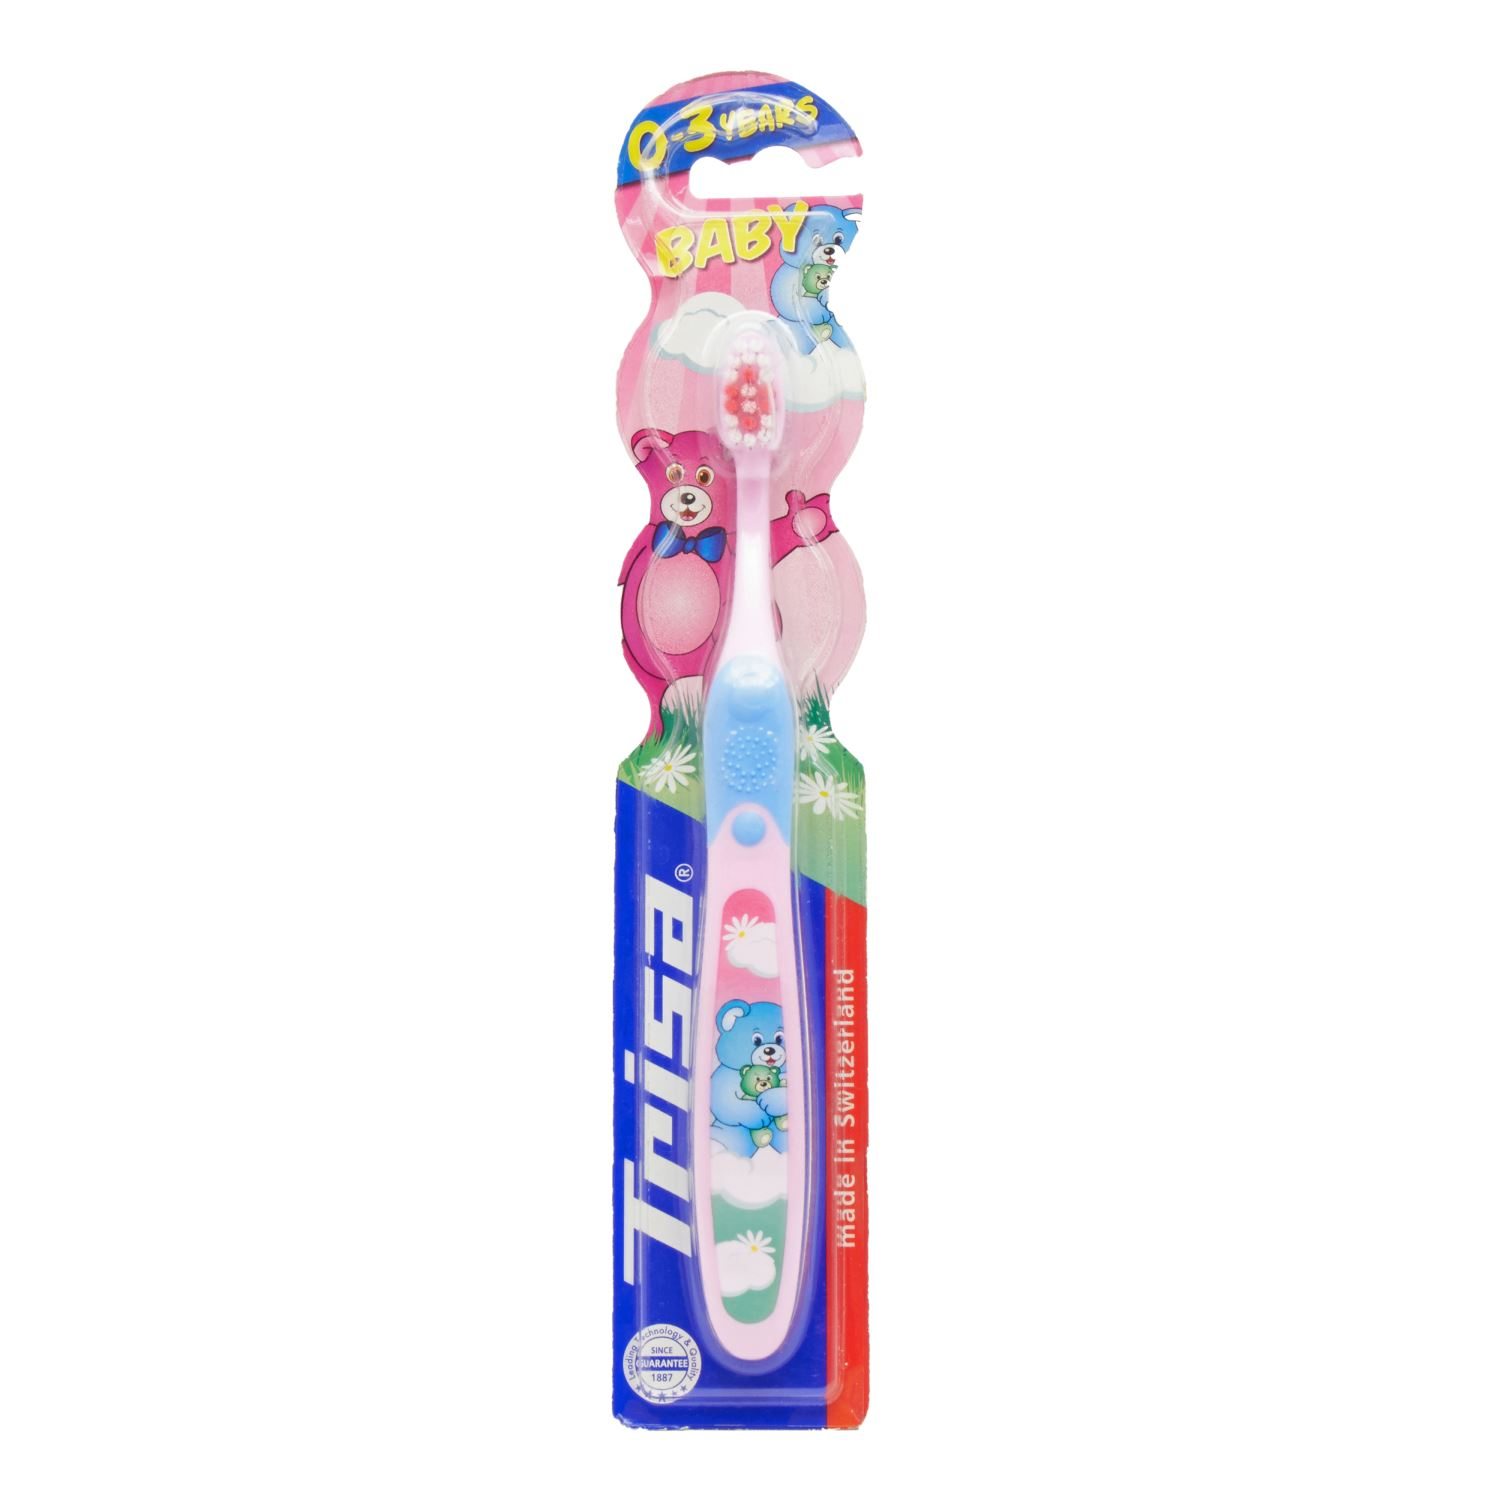 Trisa Baby Toothbrush 0 - 3 Years